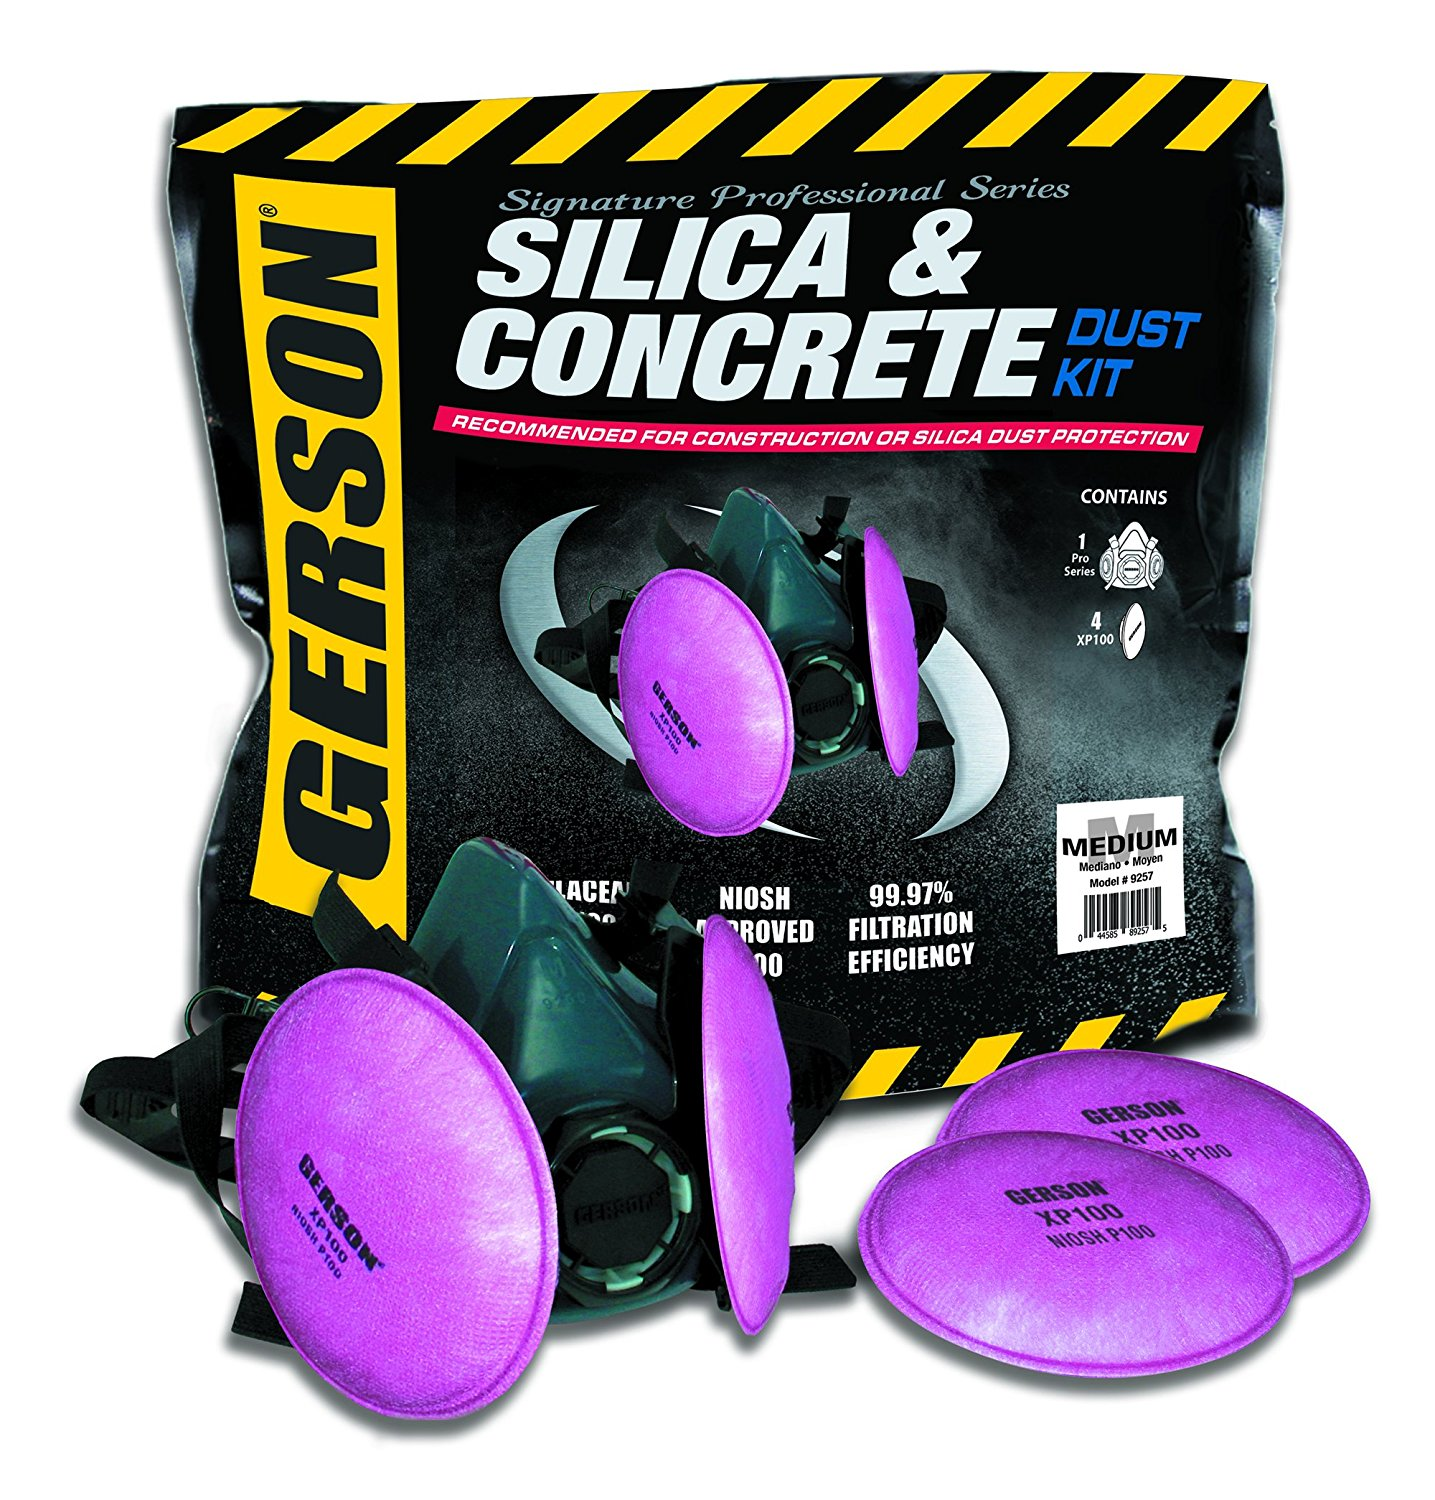 Gerson 9257 Silica & Concrete Dust Respirator Kit with Pancake Filters (Medium) by Gerson